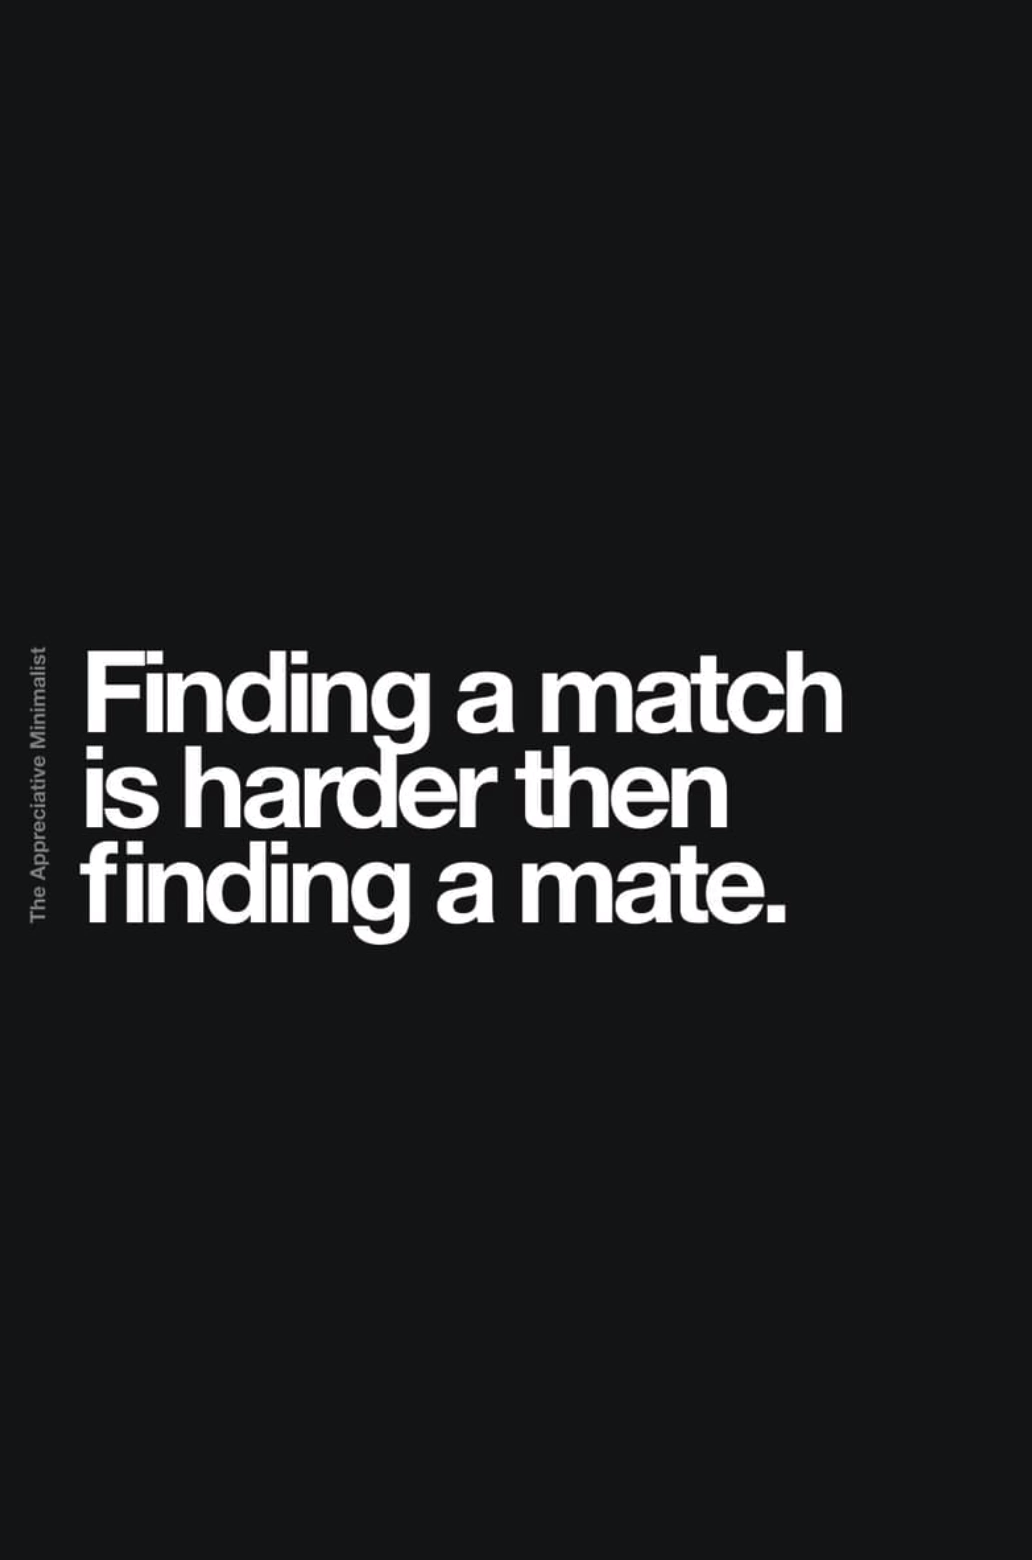 Finding a match is harder then finding a mate